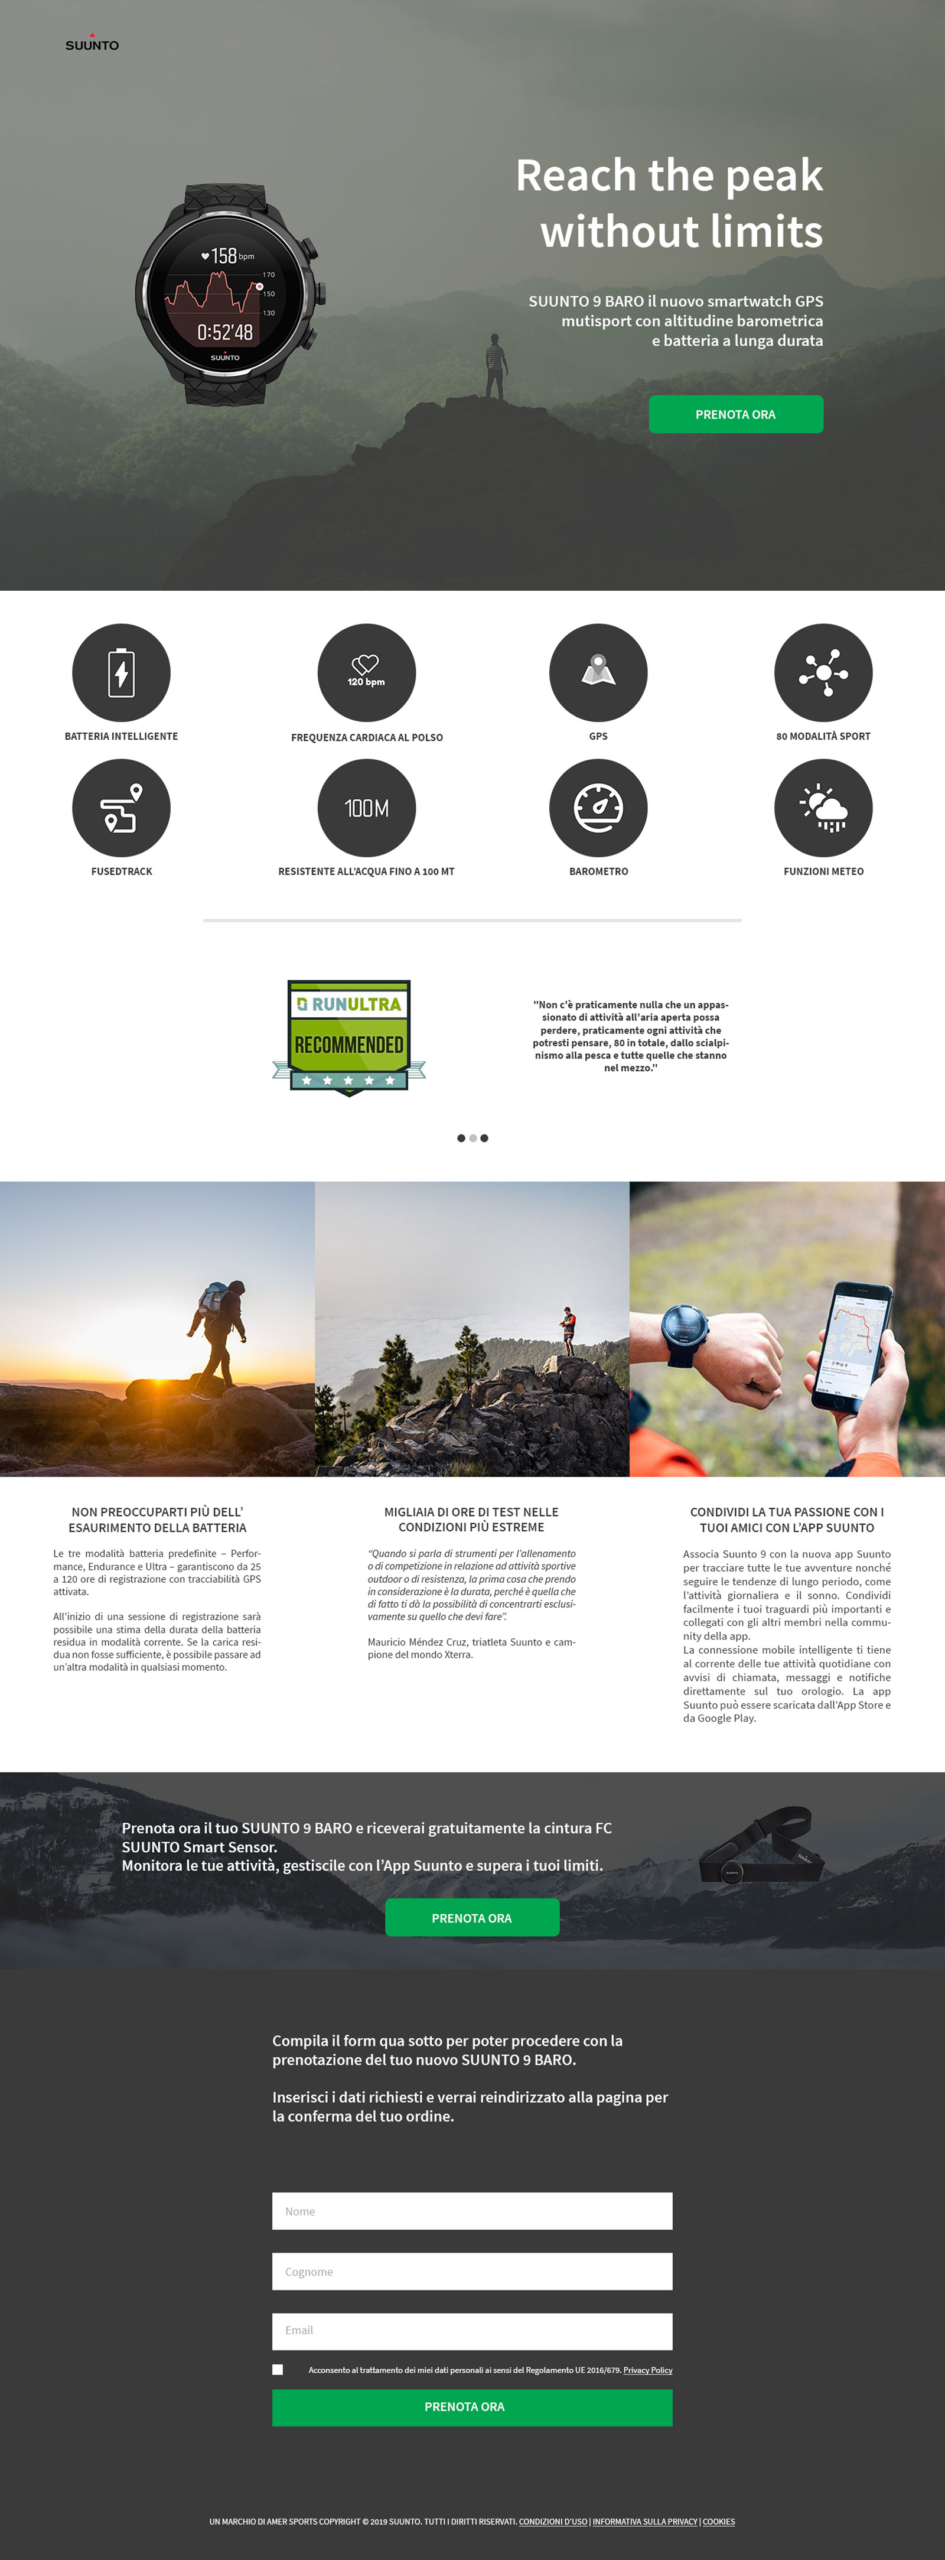 suunto-landingpage-web-marketing-nut-for-design